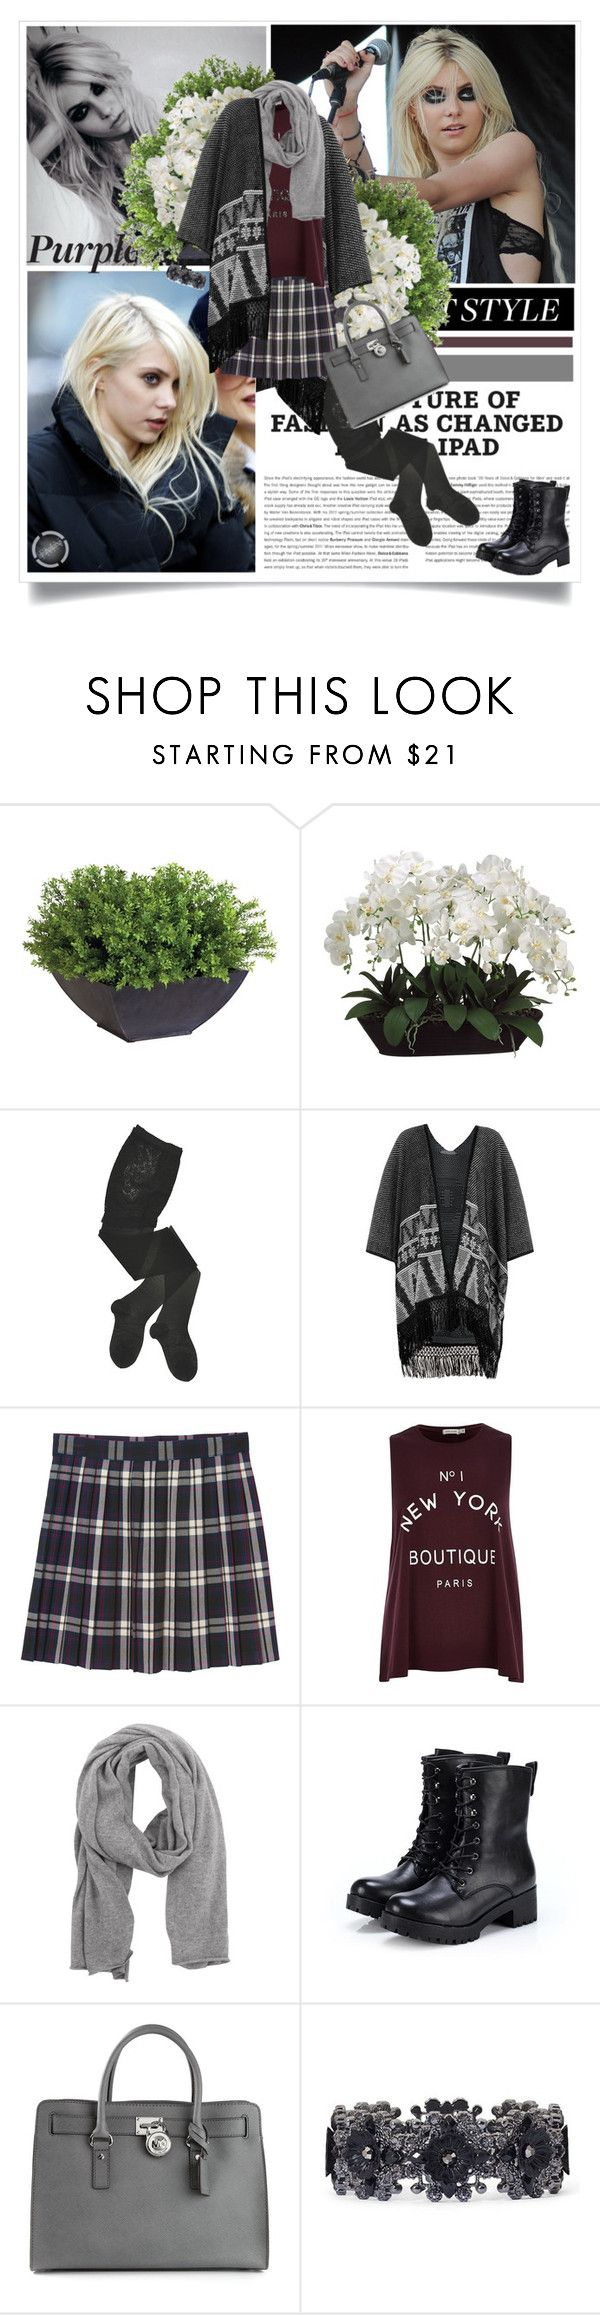 """Taylor Momsen"" by kaya95 ❤ liked on Polyvore featuring Ethan Allen, Allstate Floral, HYD, Monki, River Island, 360 Sweater, Exull and MICHAEL Michael Kors"